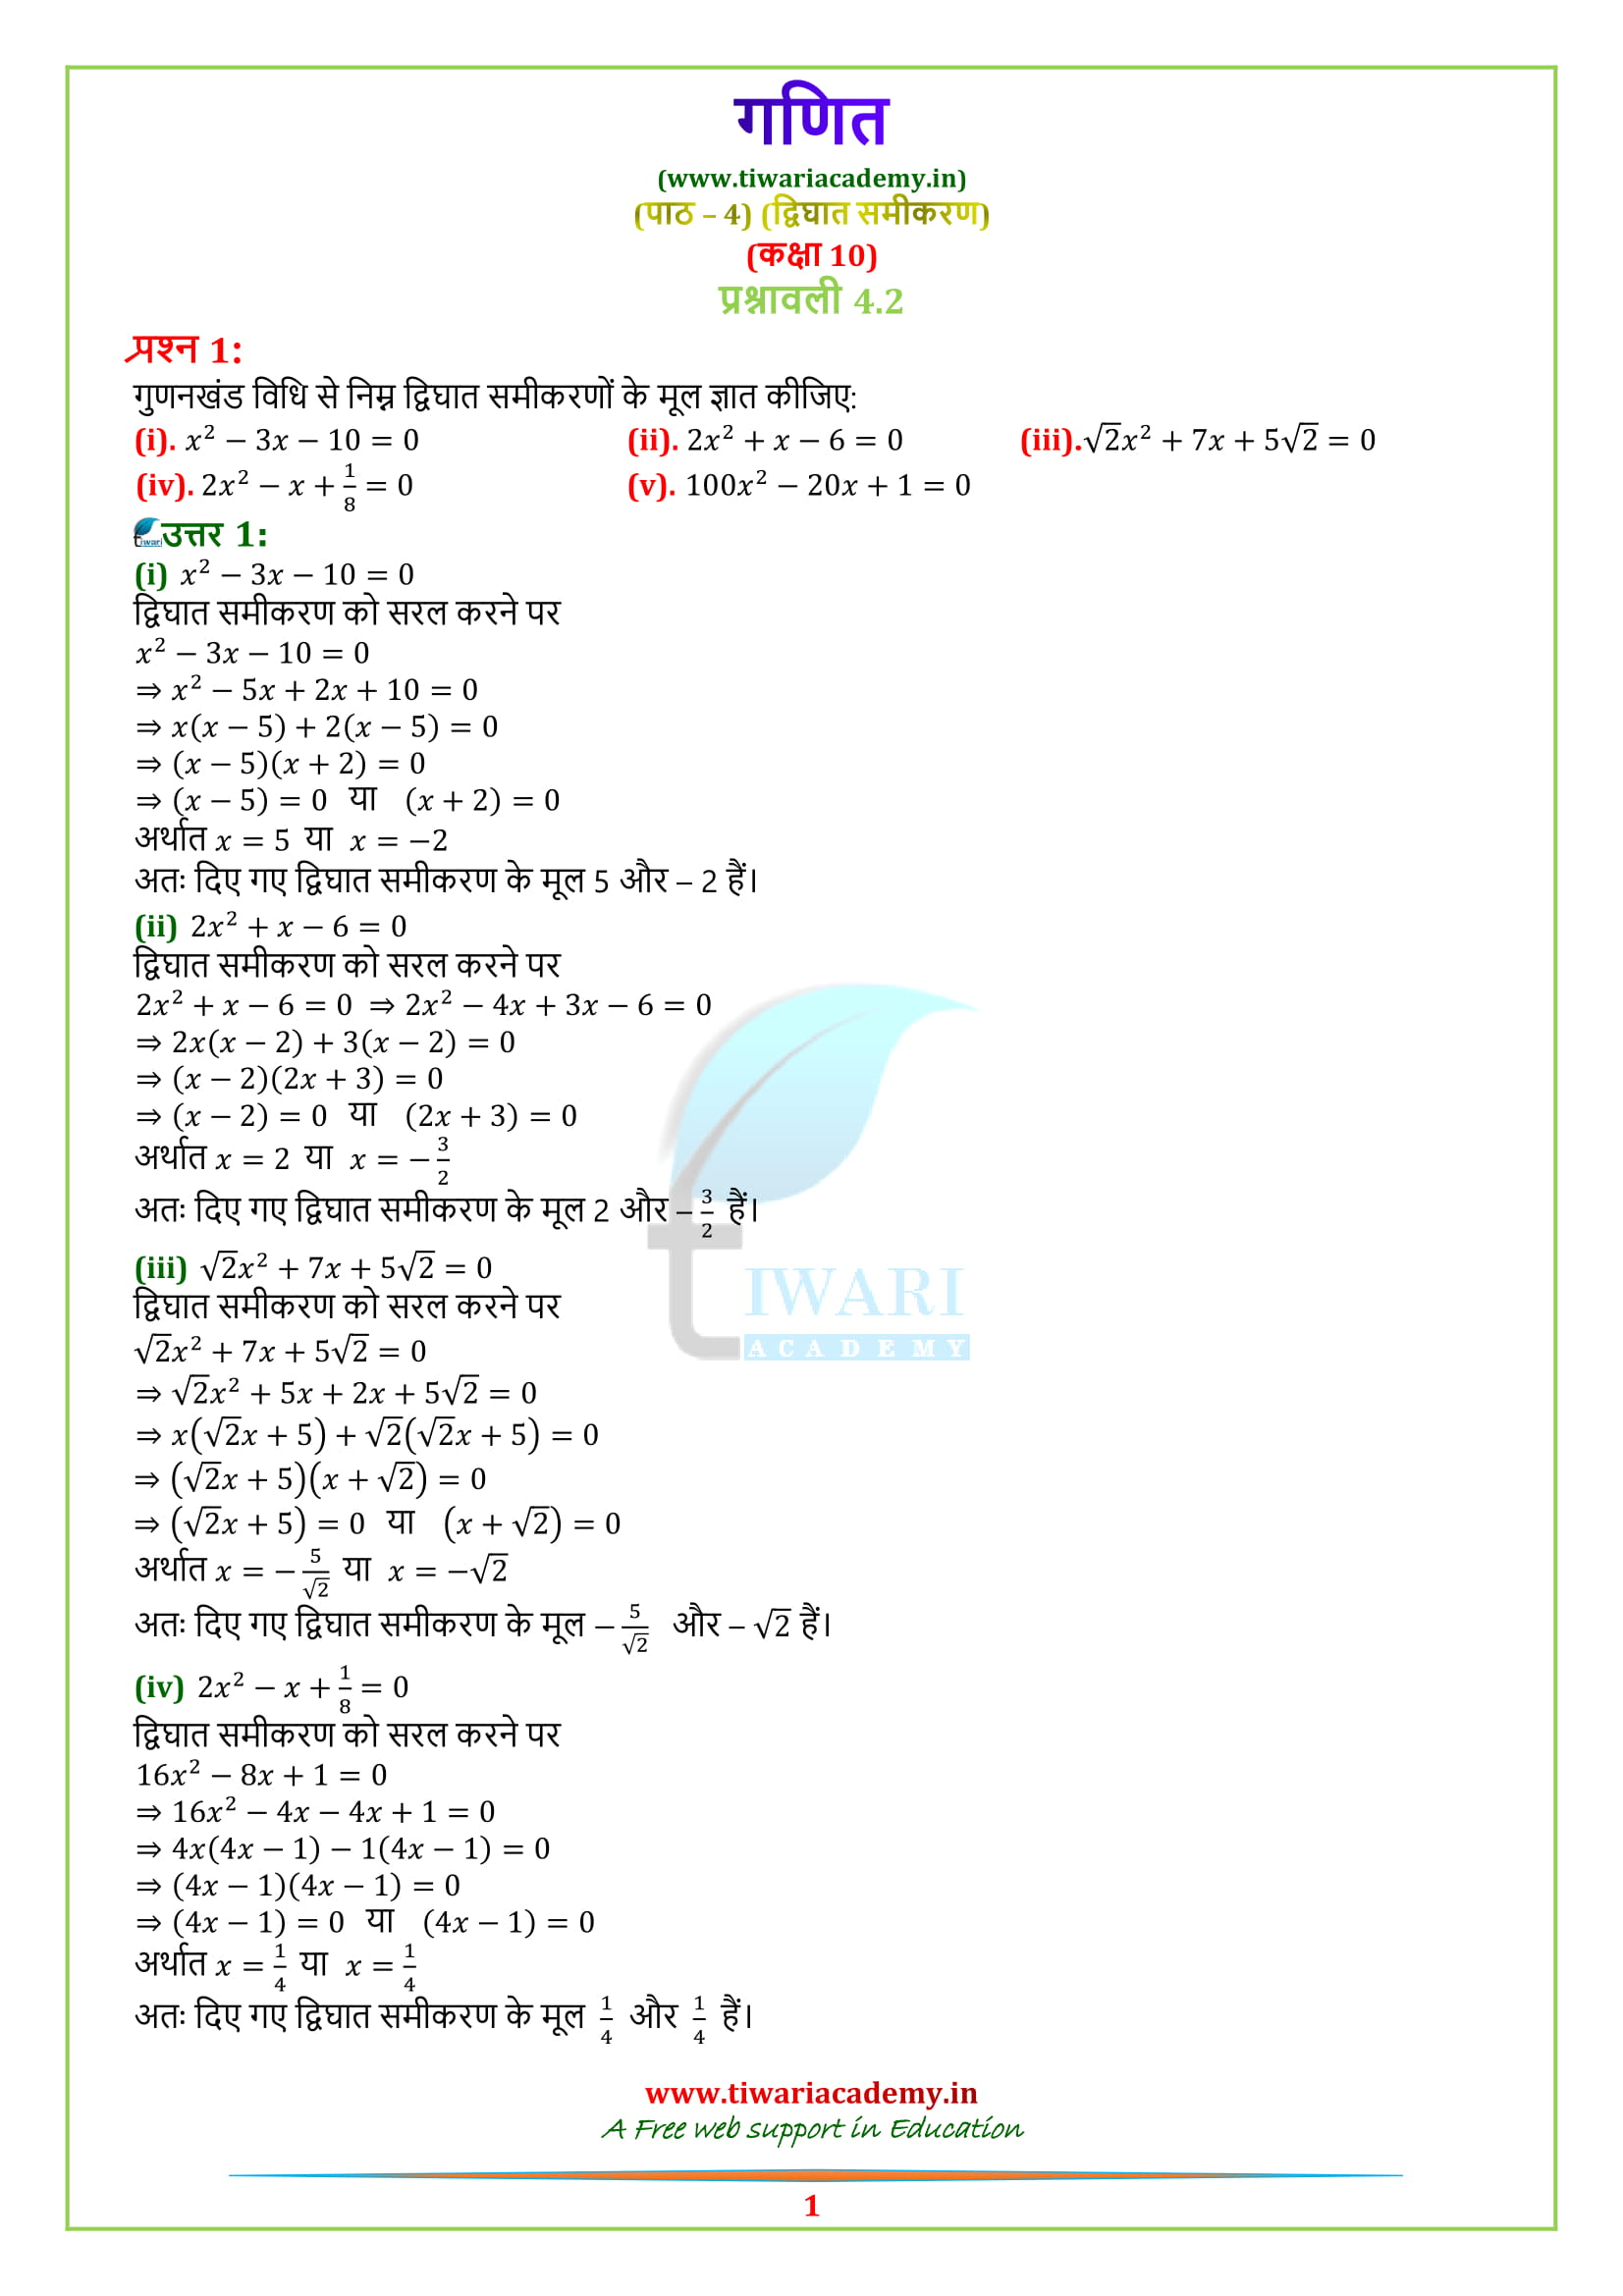 Class 10 Maths Exercise 4.2 in hindi for 2018-19.